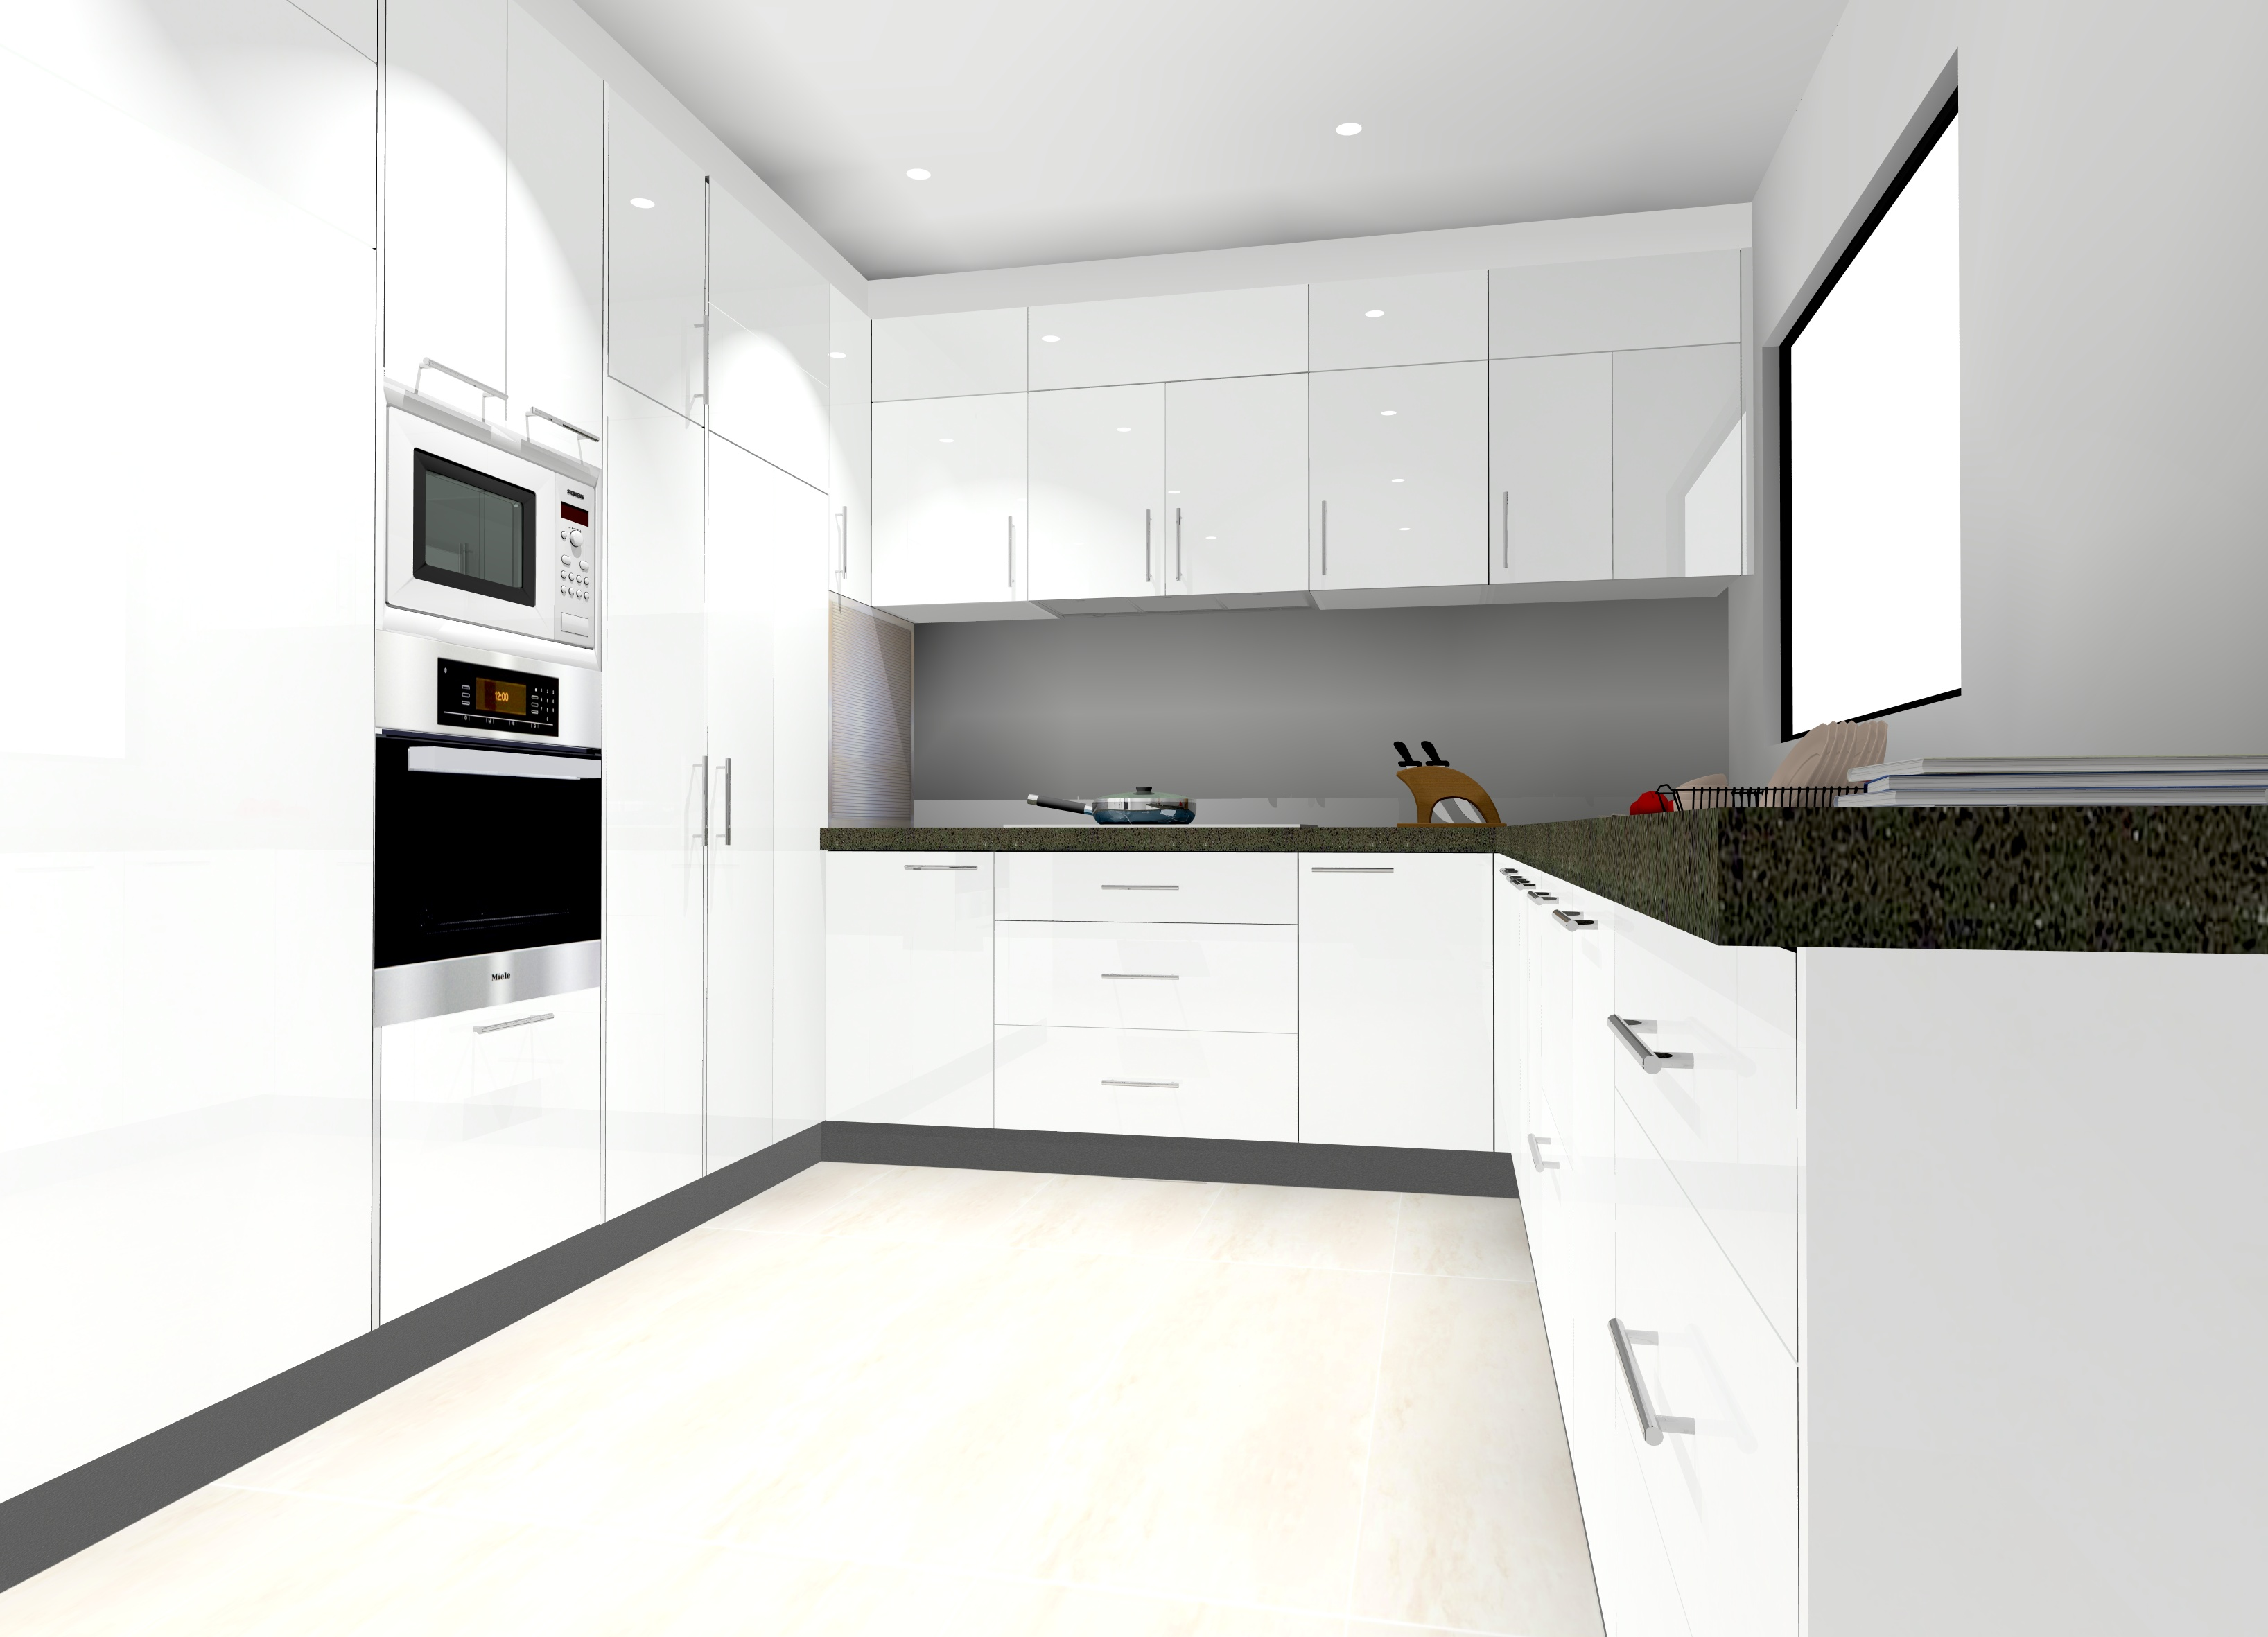 geelong designer kitchens kitchen design planning tools icm geelong 1202